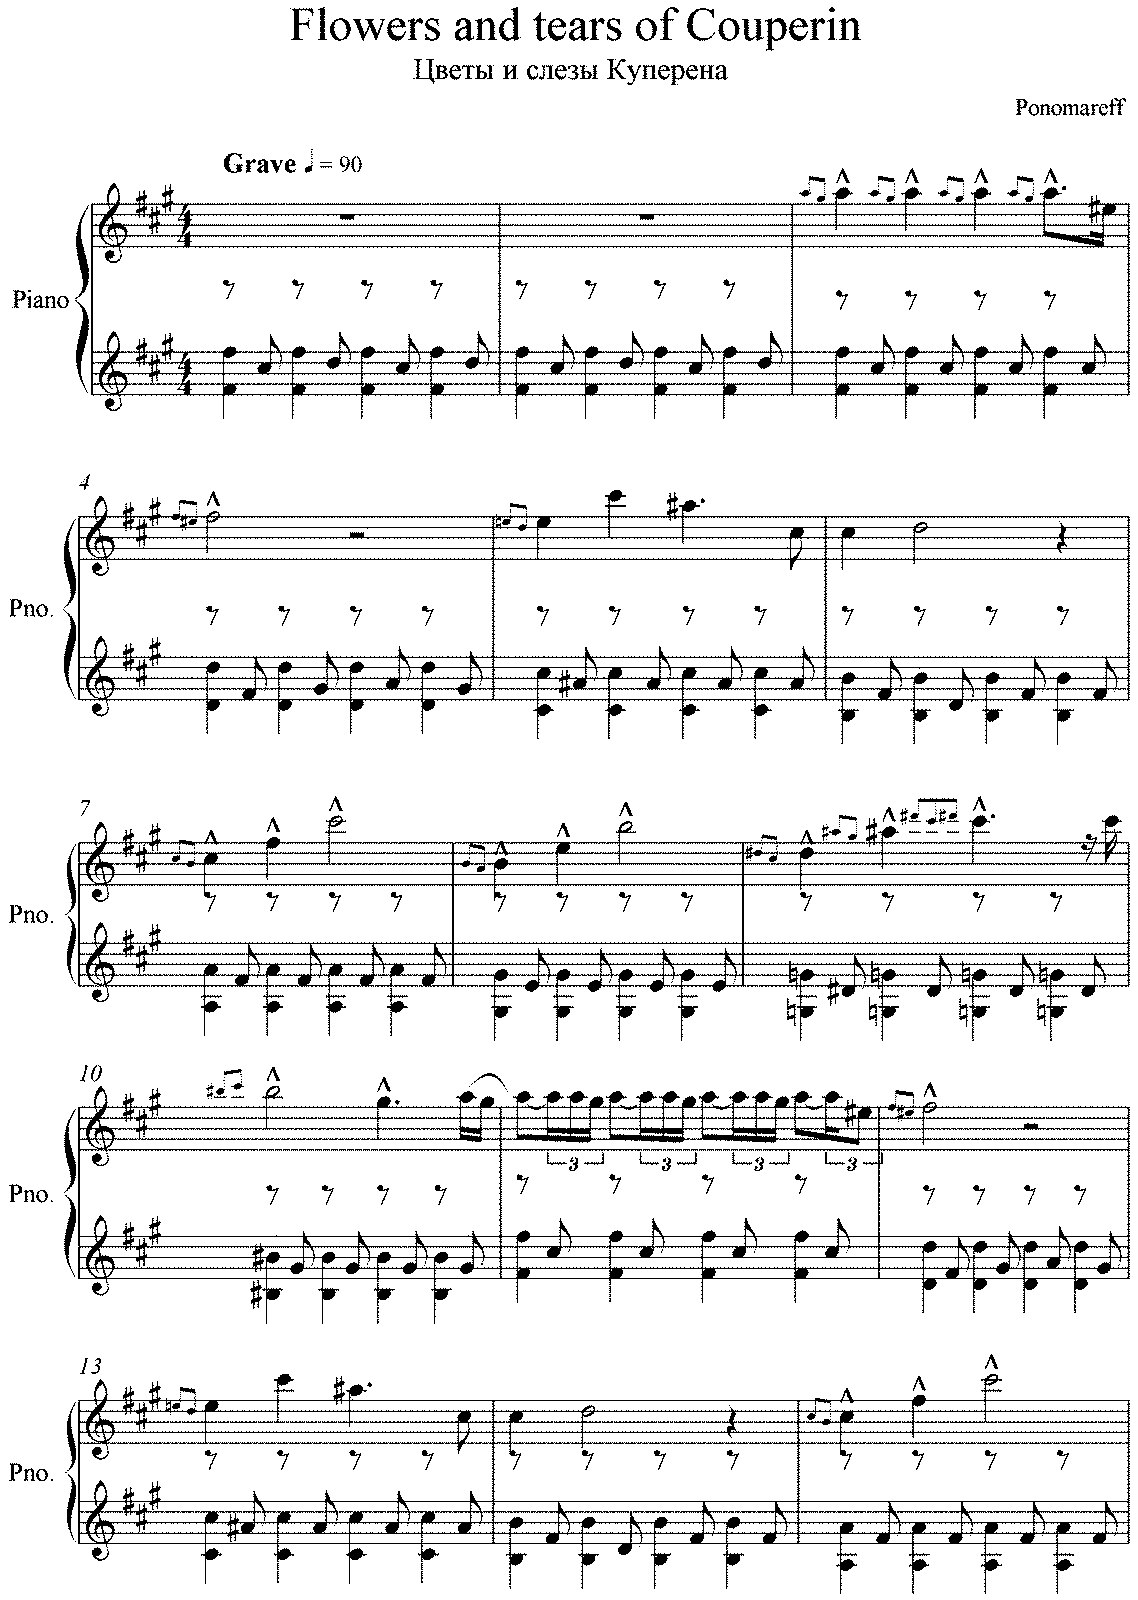 PMLP476104-Flowers and tears of Couperin.pdf